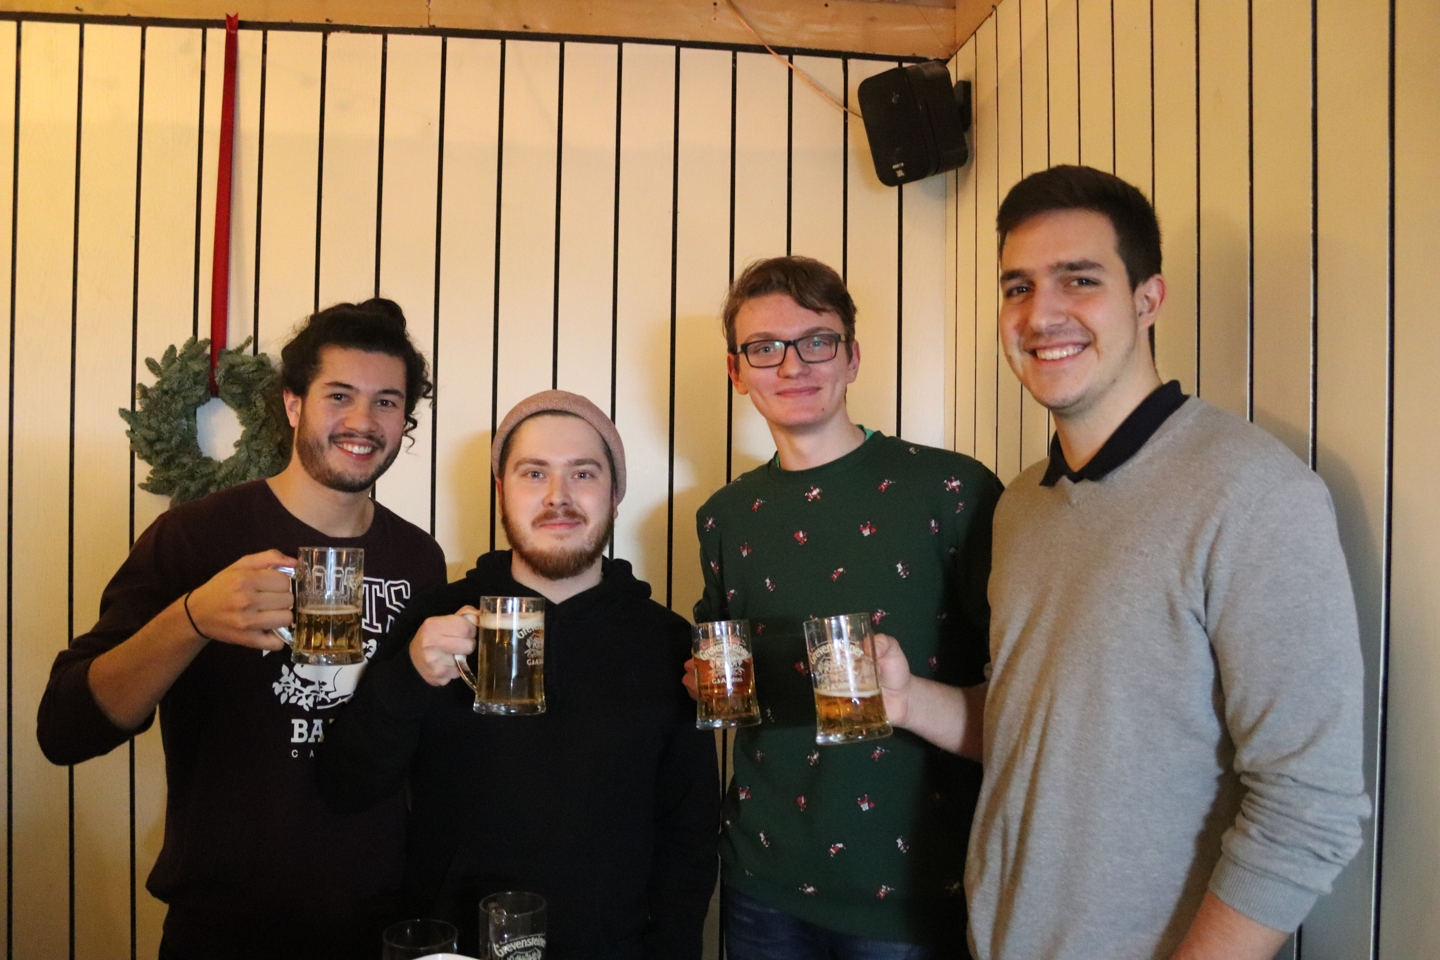 Four smiling male students with beer glasses in their hands.